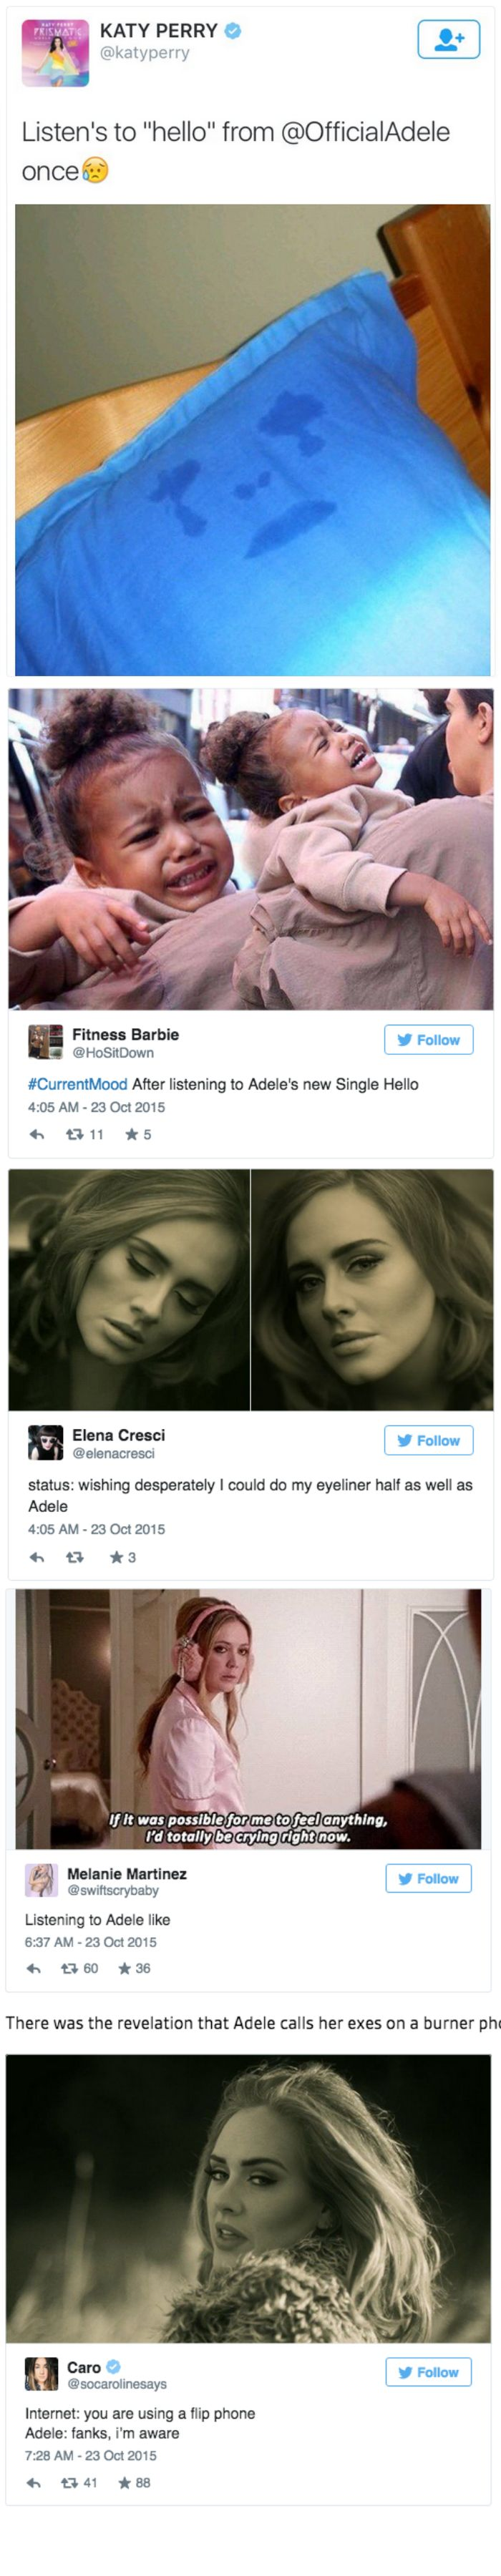 Adele Releases a New Video, 'Hello' and the Twitter Fired Up the Meme-Reply Machine in Record Time